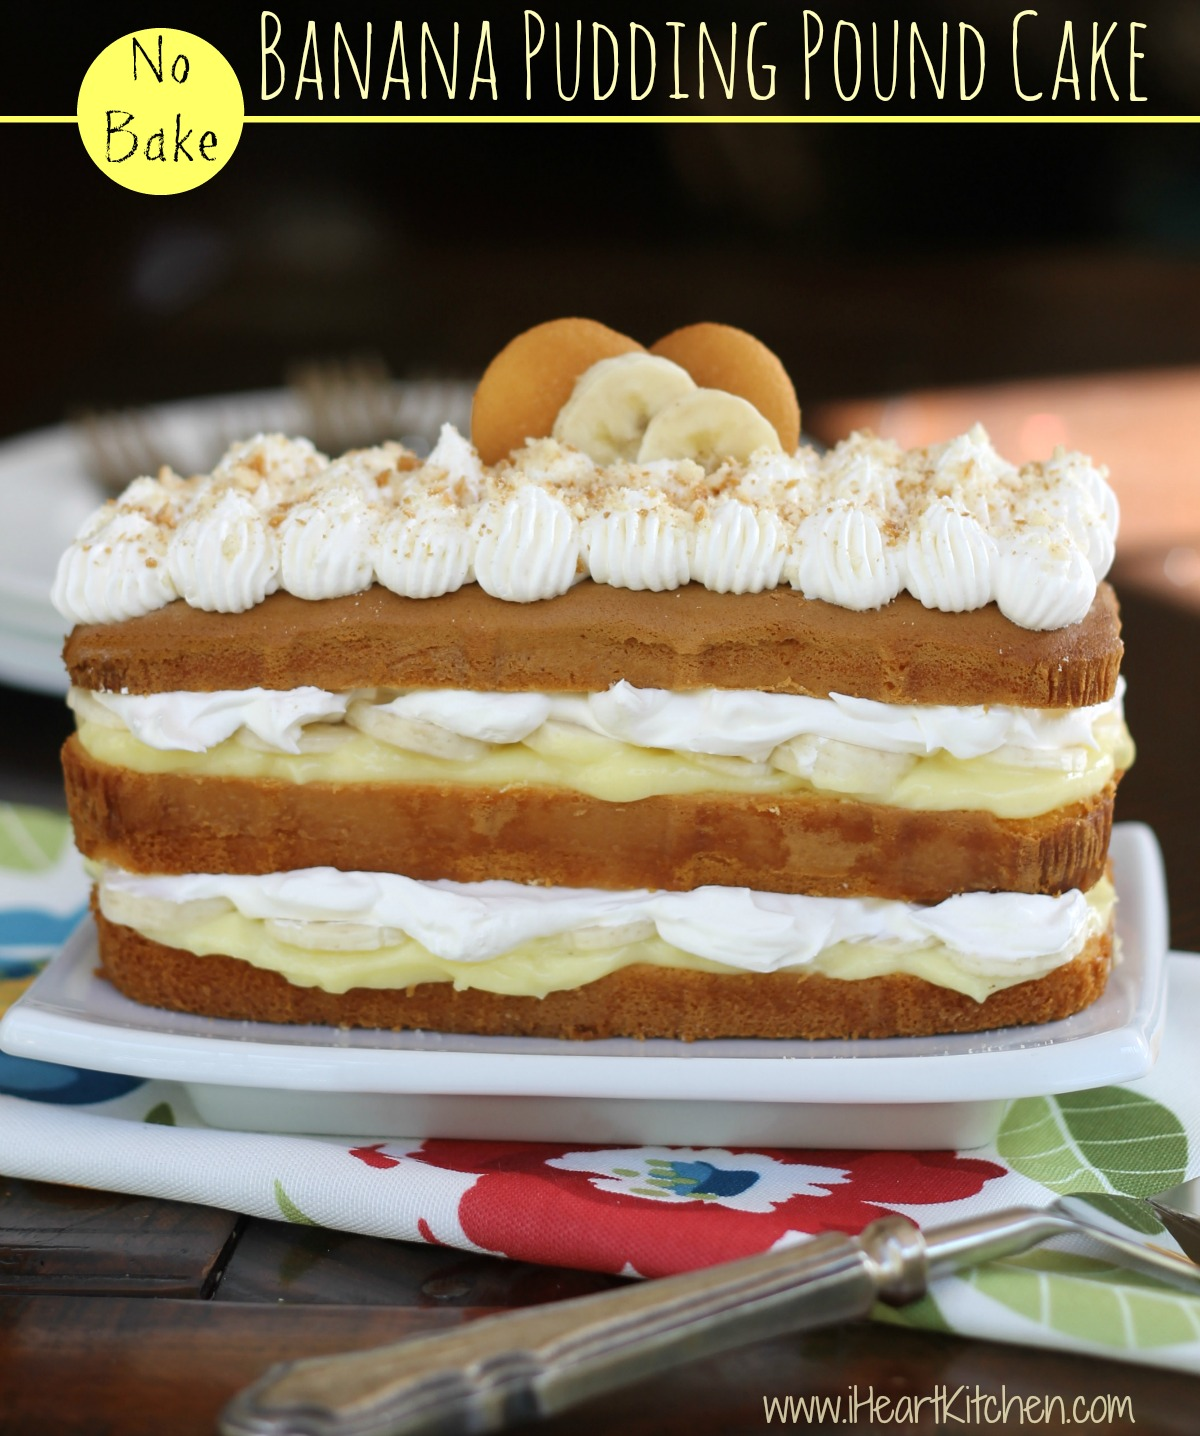 No Bake Banana Pudding Pound Cake